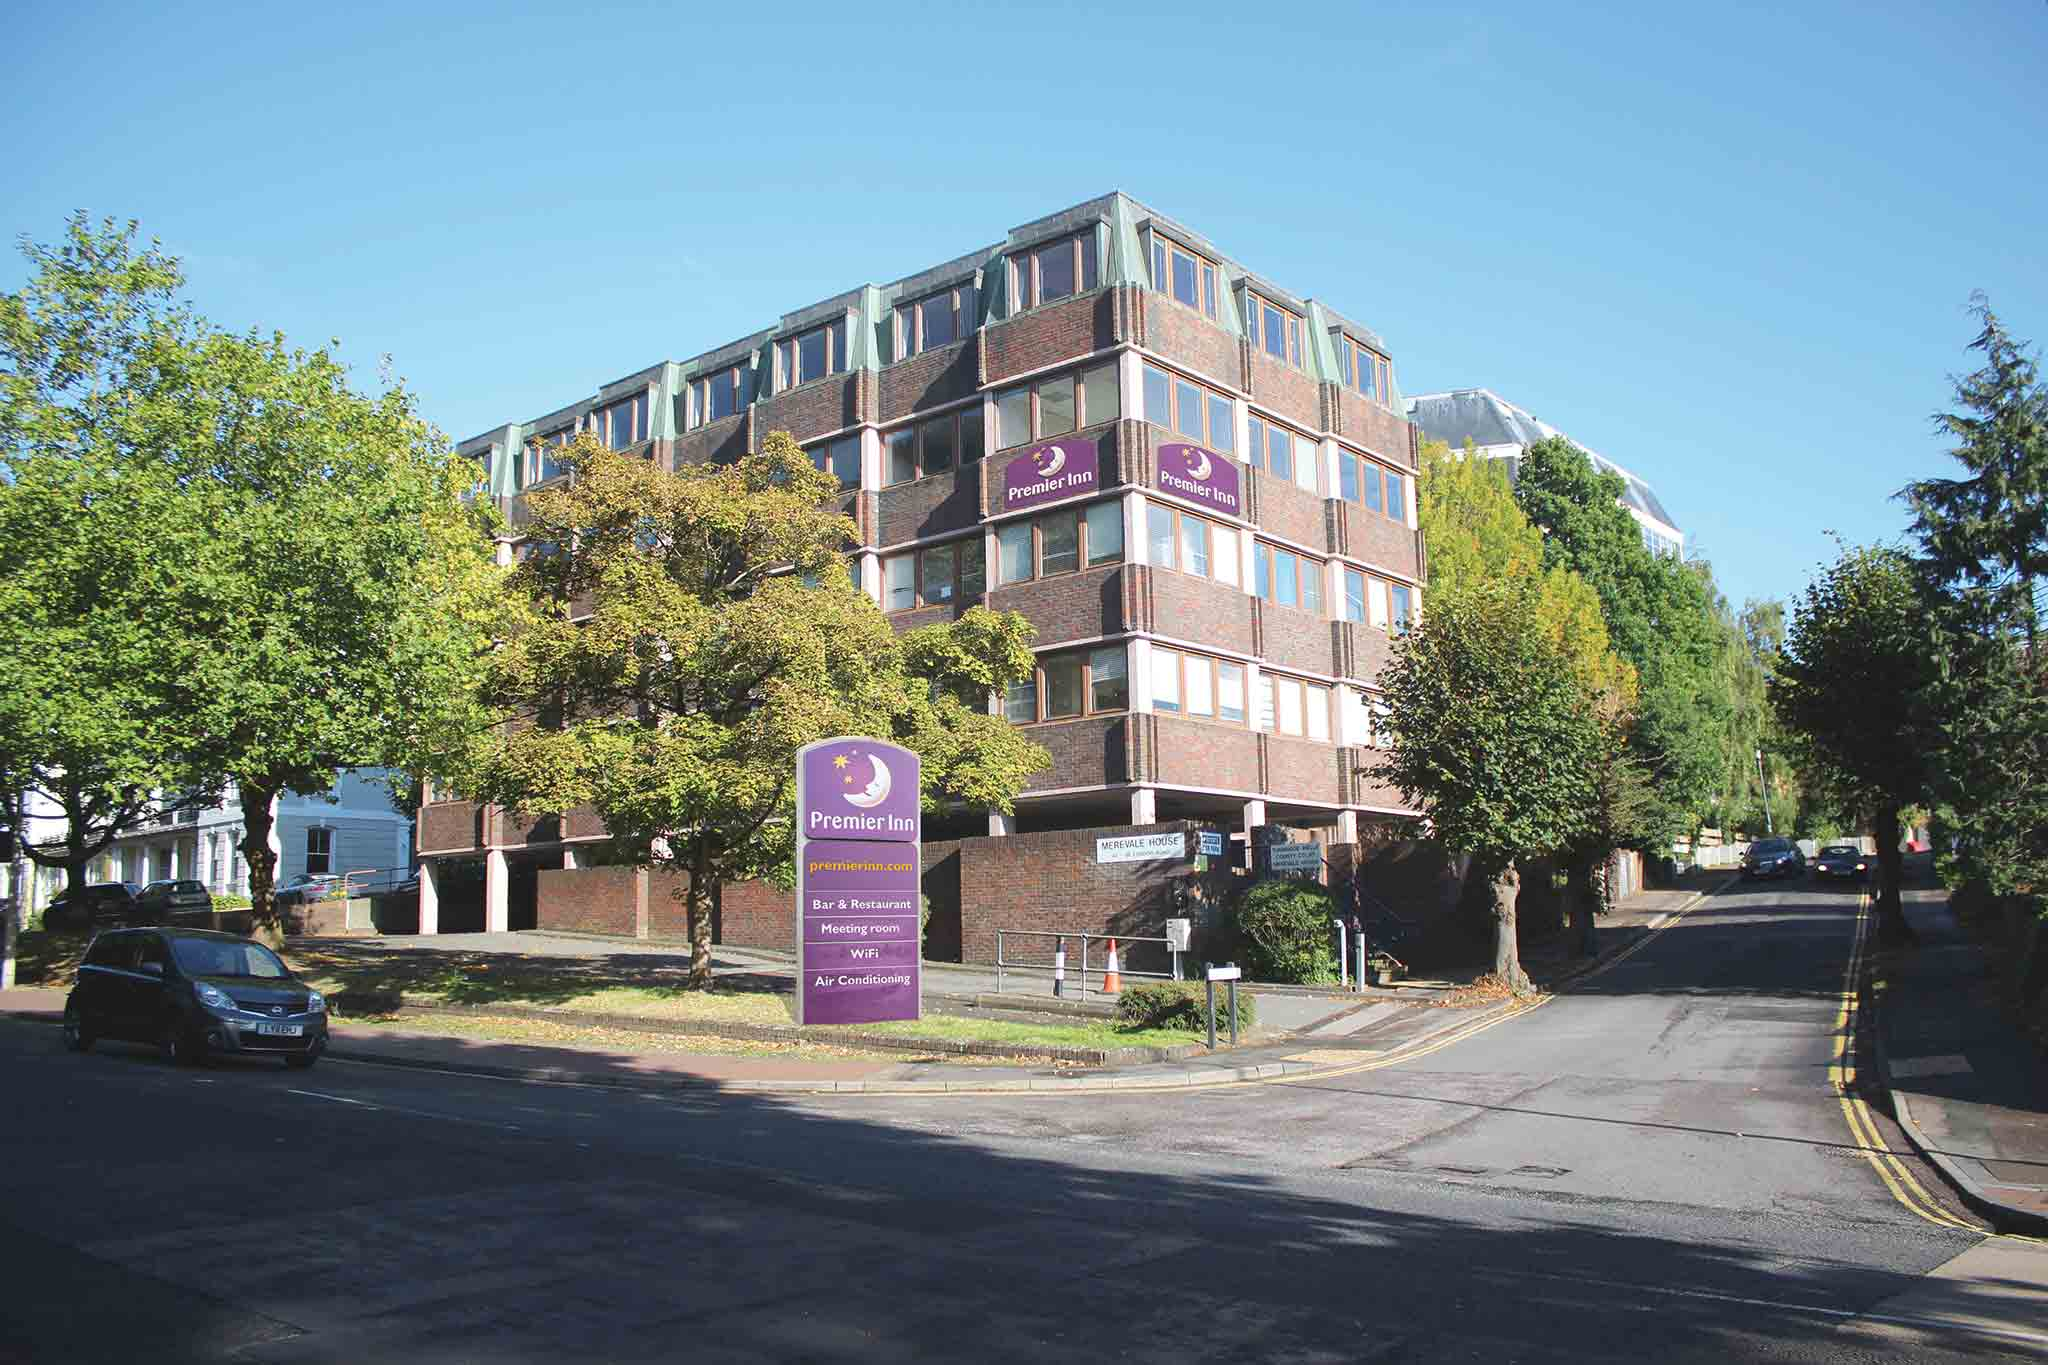 Premier Inn Tunbridge Wells